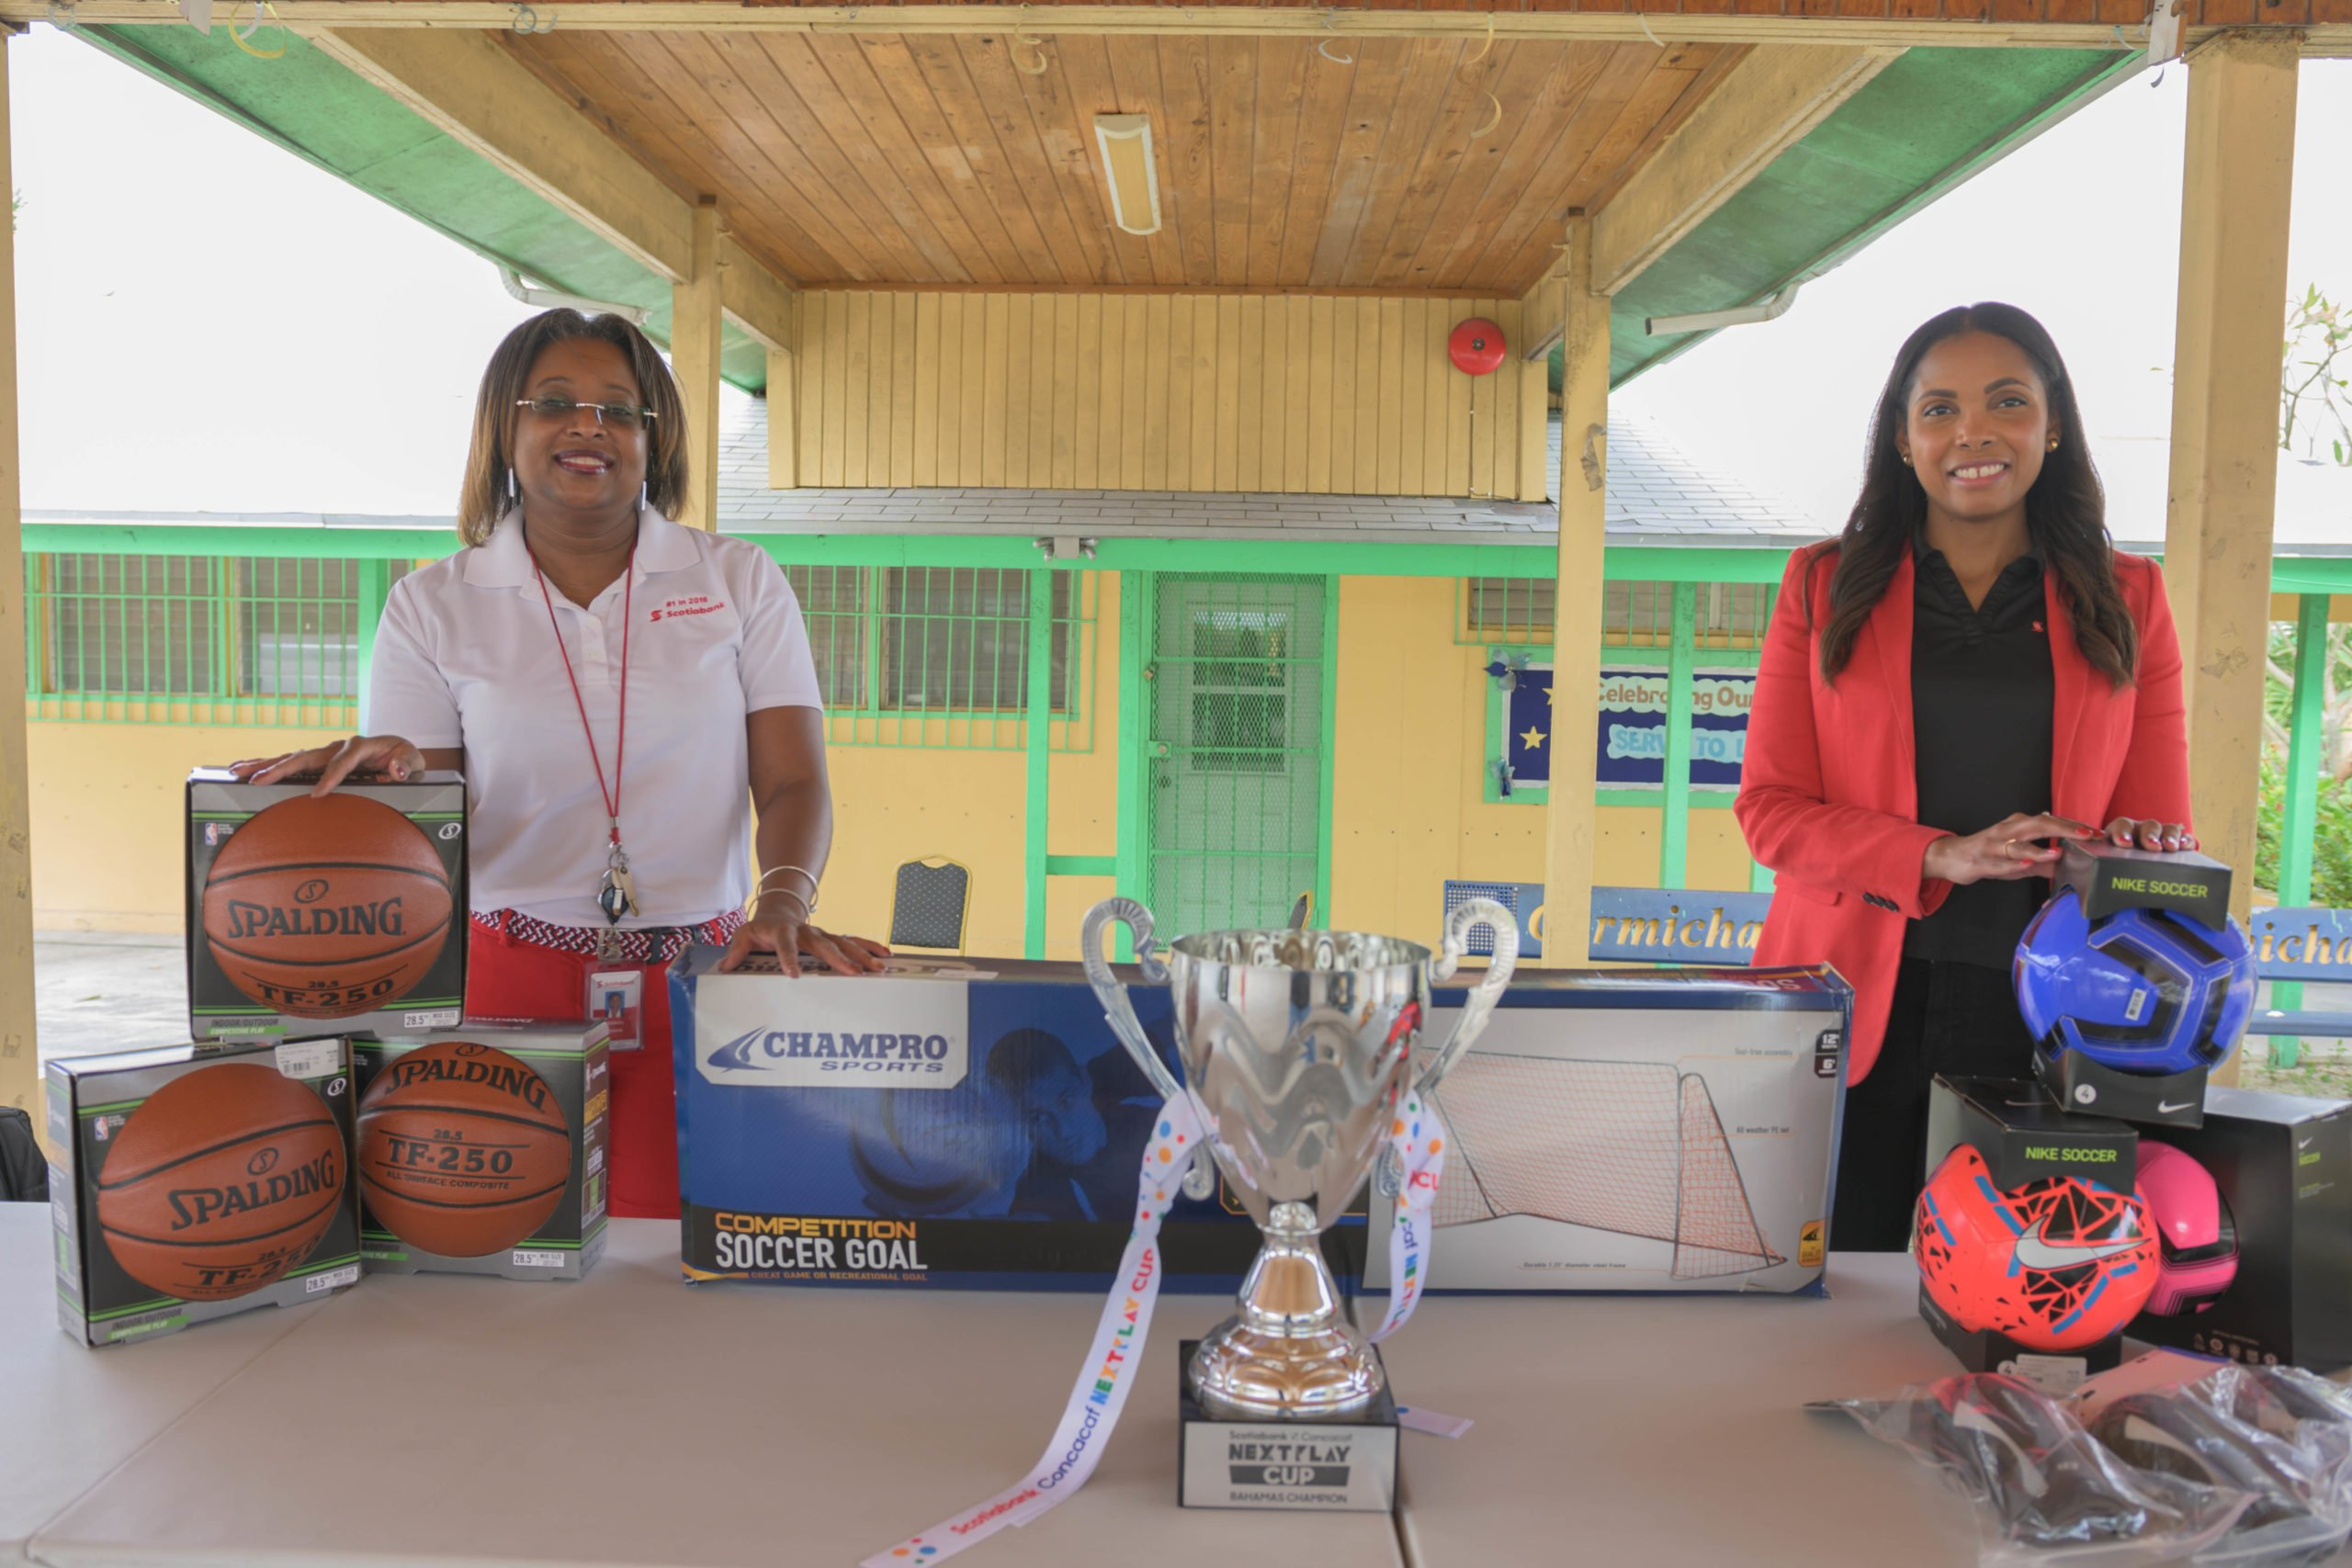 Scotiabank Next Play soccer champions receive prize gear